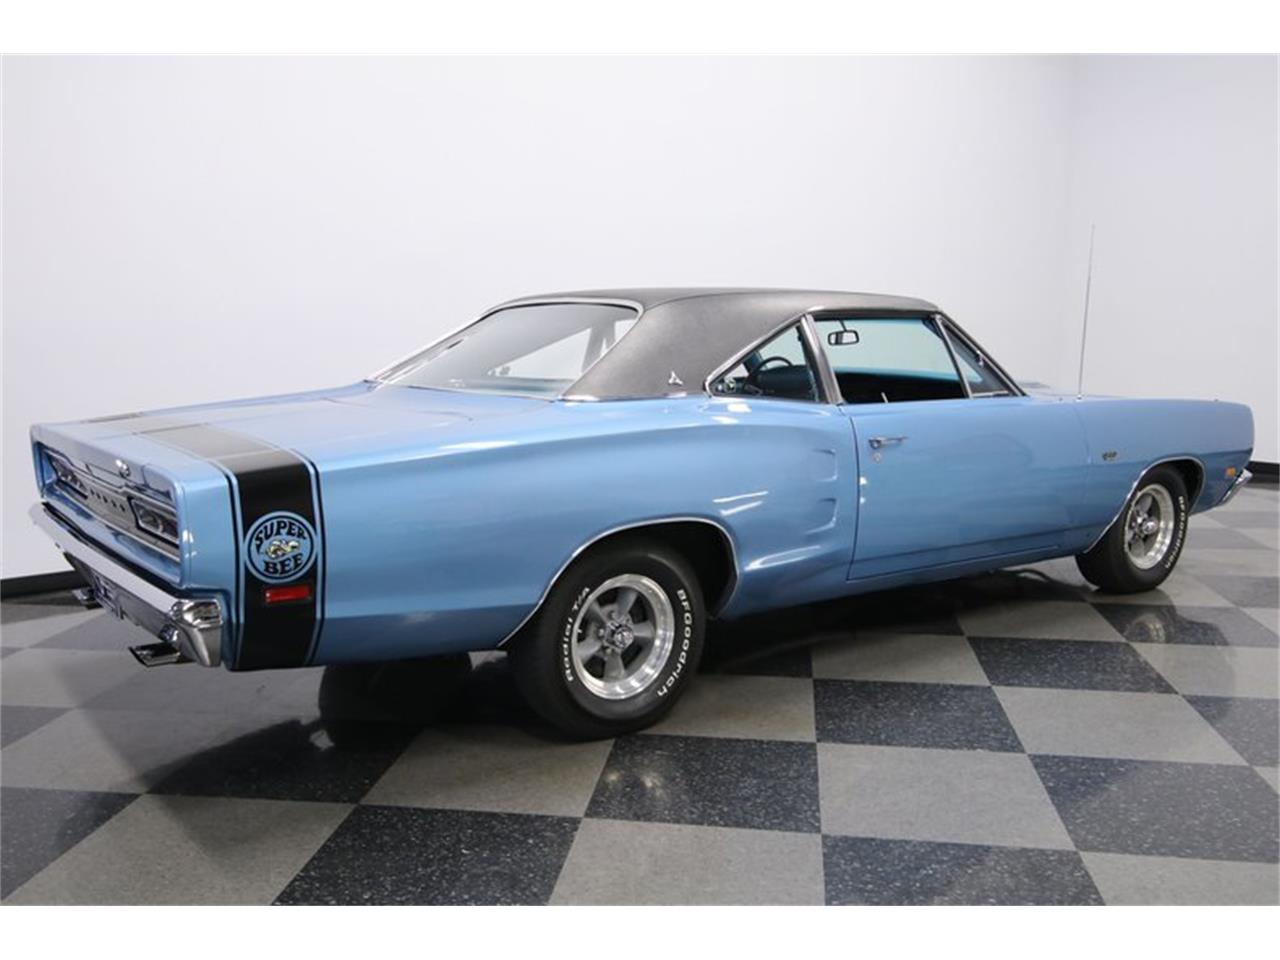 Large Picture of Classic 1969 Dodge Super Bee located in Lutz Florida - $43,995.00 - QP0O